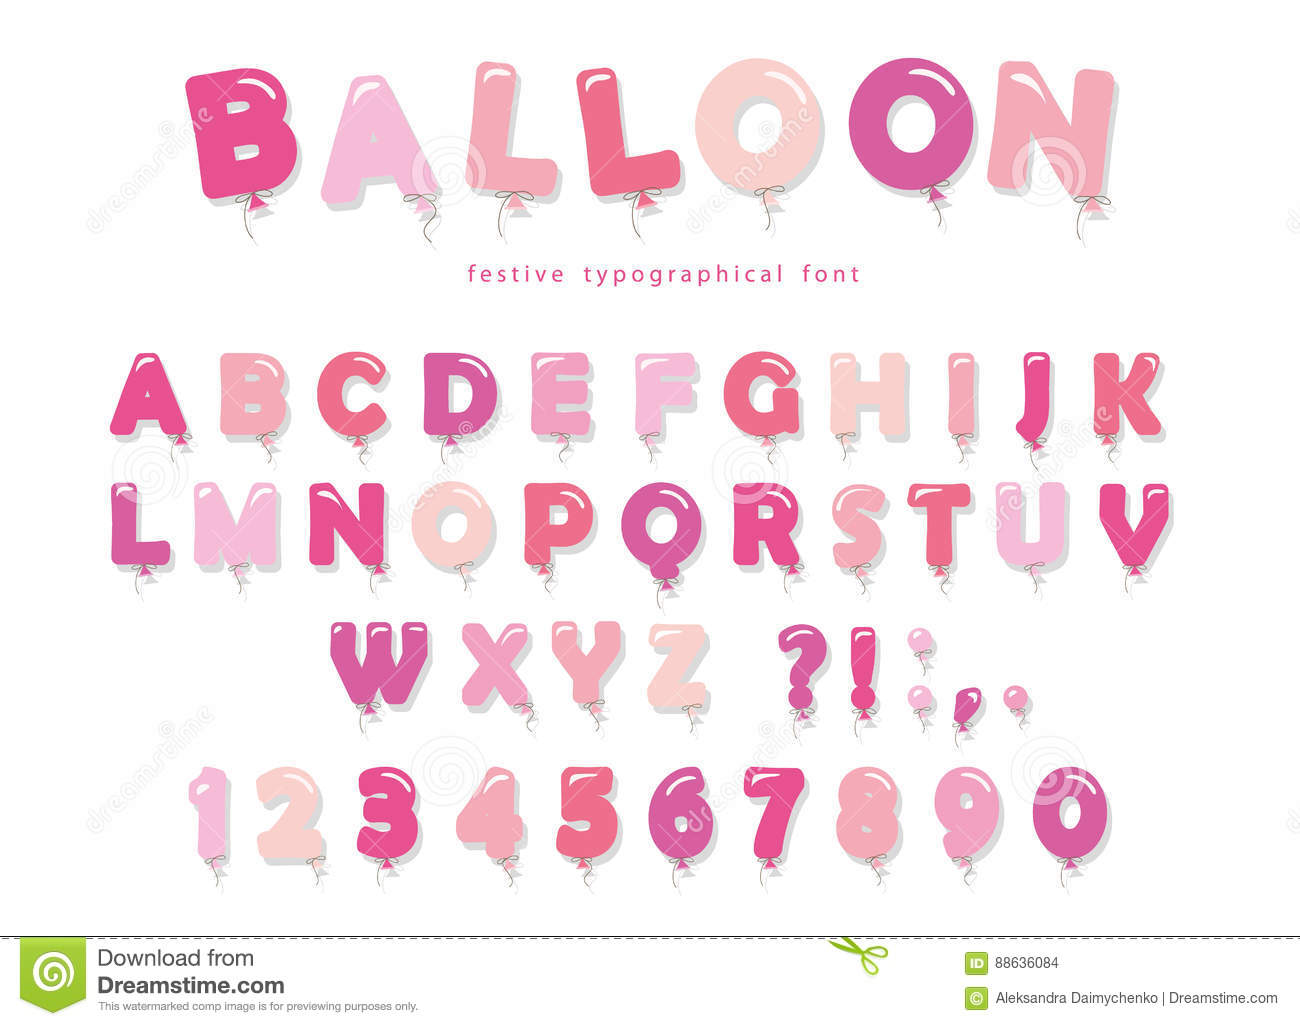 balloon pink font cute abc letters and numbers for birthday baby shower girly